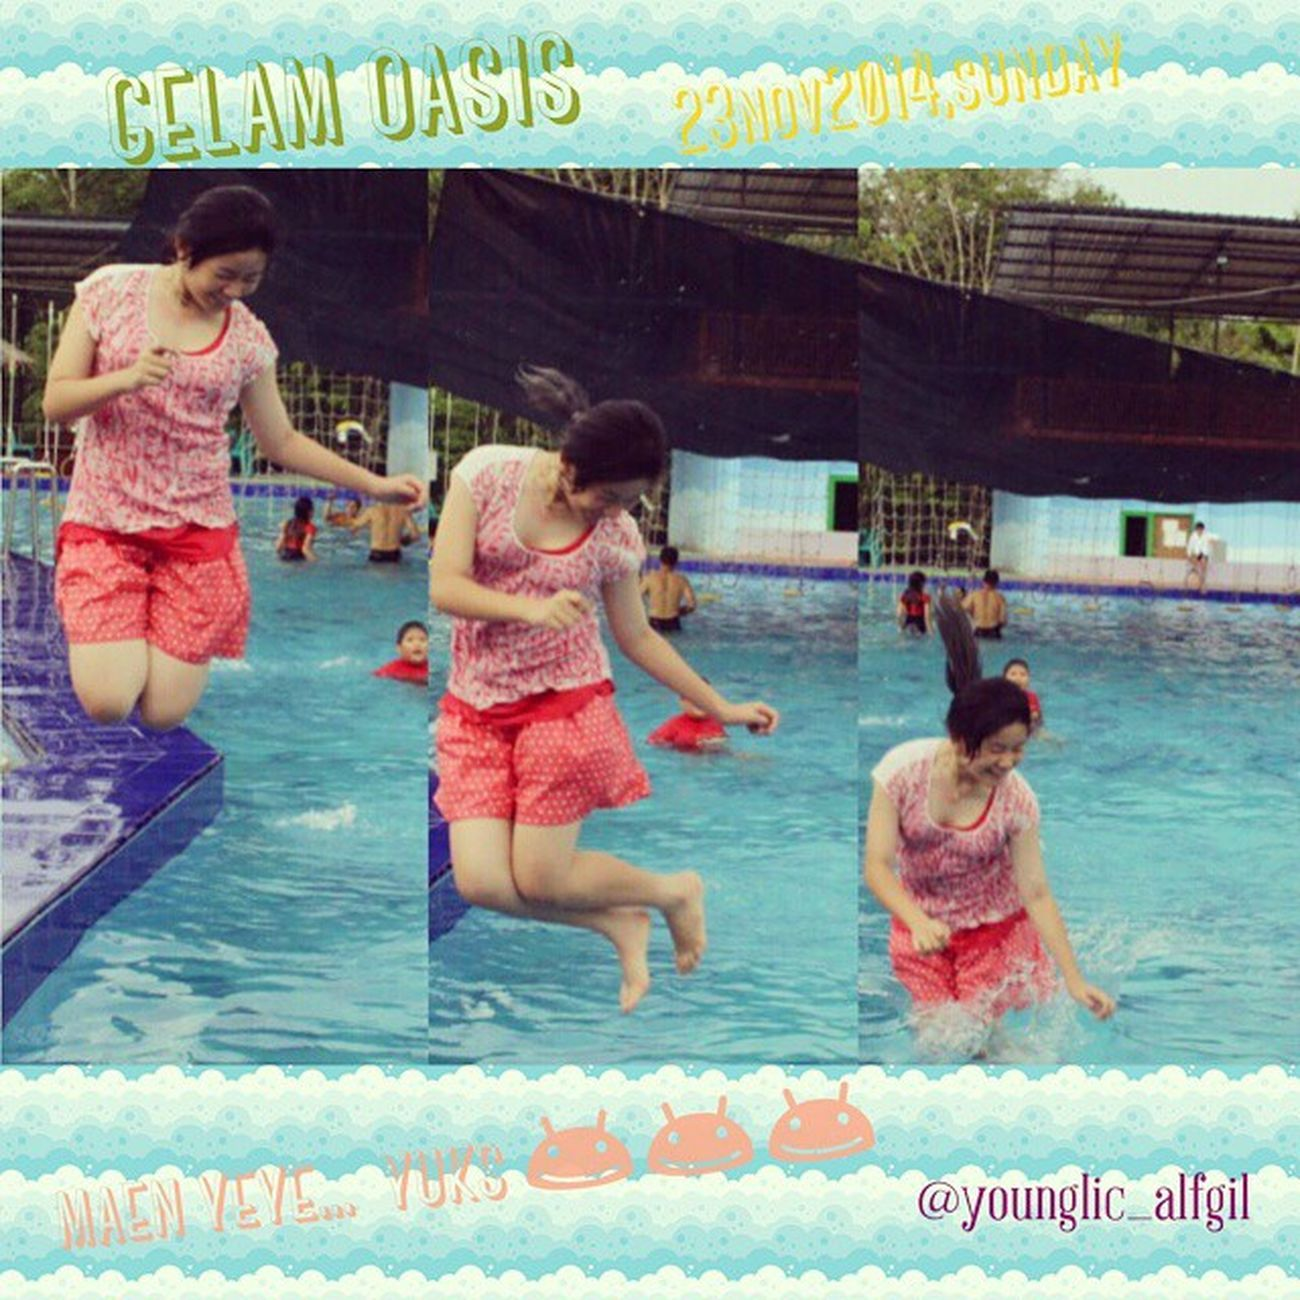 Latepost Younglic_alfgil Sundaylol Weekend weekendday photography Photo editing edit2 byme picnic gelamoasis moment Made with @nocrop_rc rcnocrop